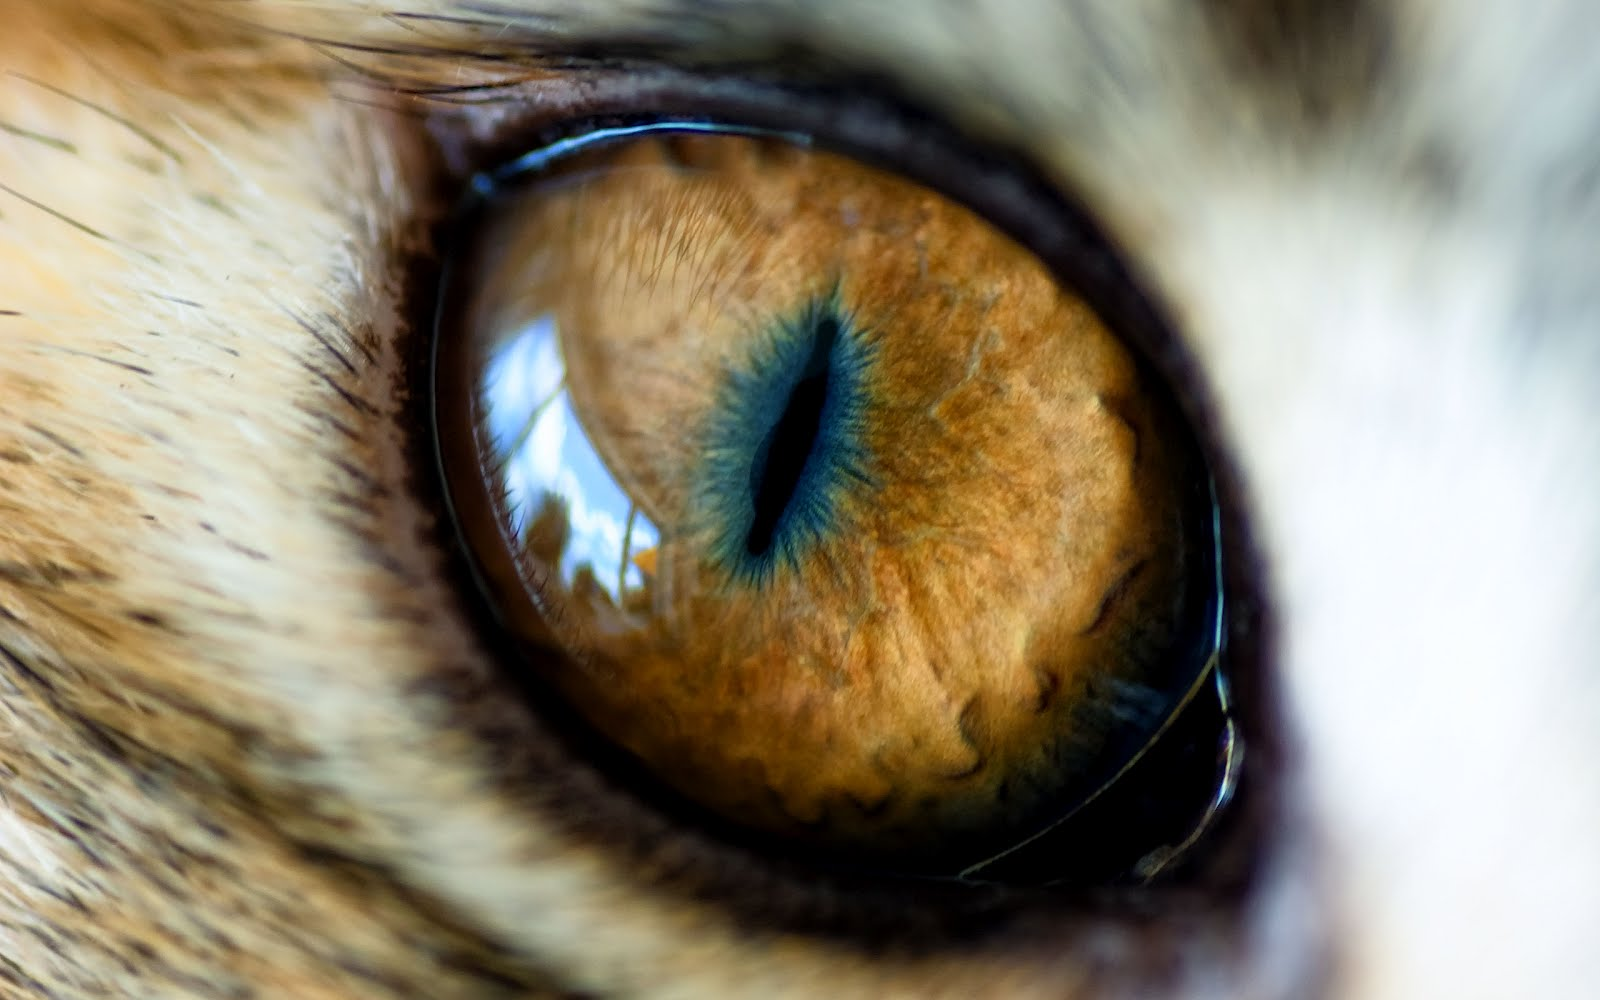 Wallpapers Animal   Eye of The Tiger 1600x1000